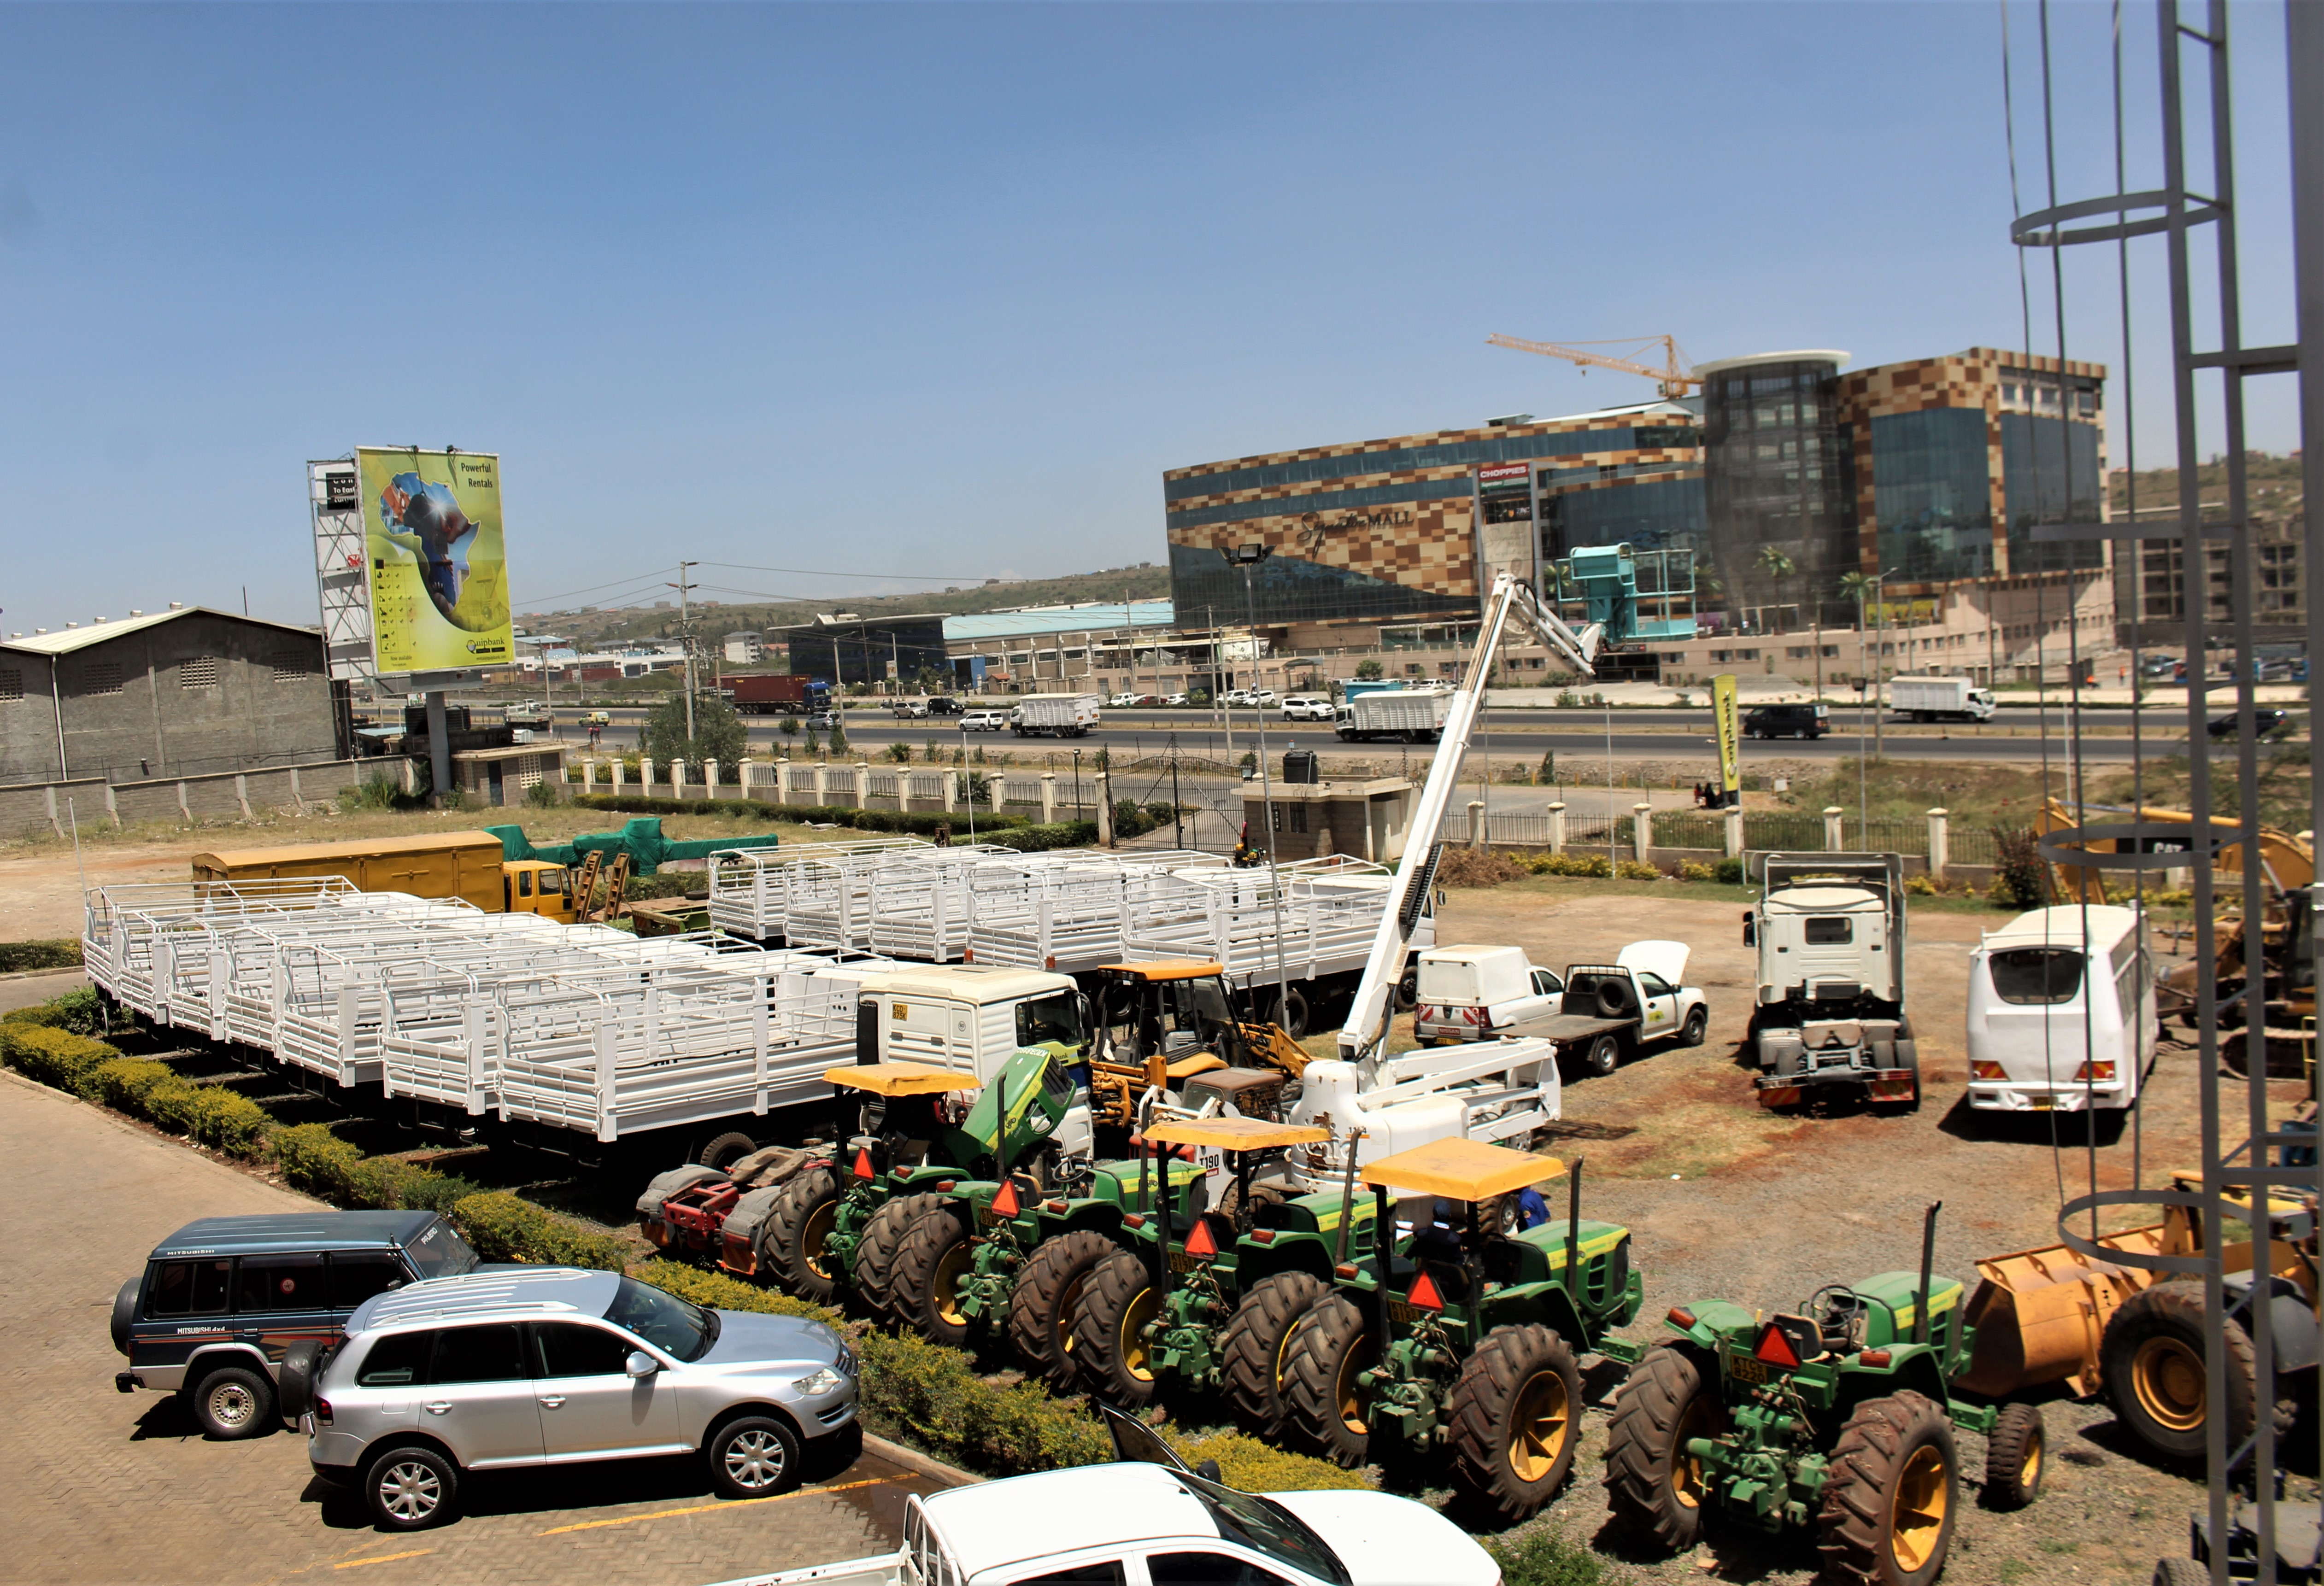 Quipbank Trust Limited offices on Mombasa Road